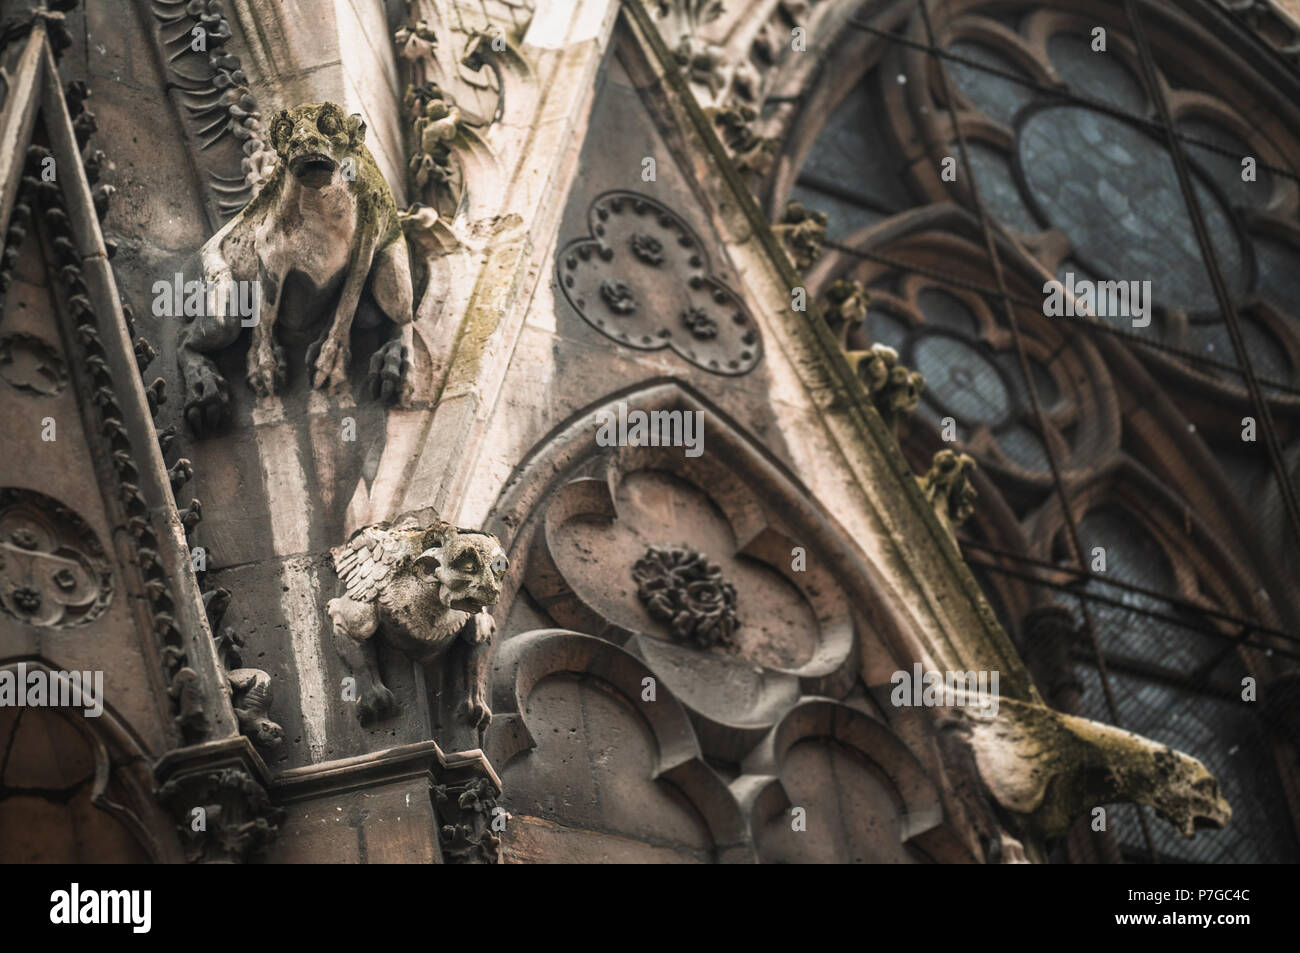 Gargoyles on Notre Dame Cathedral in Pairs, France. - Stock Image